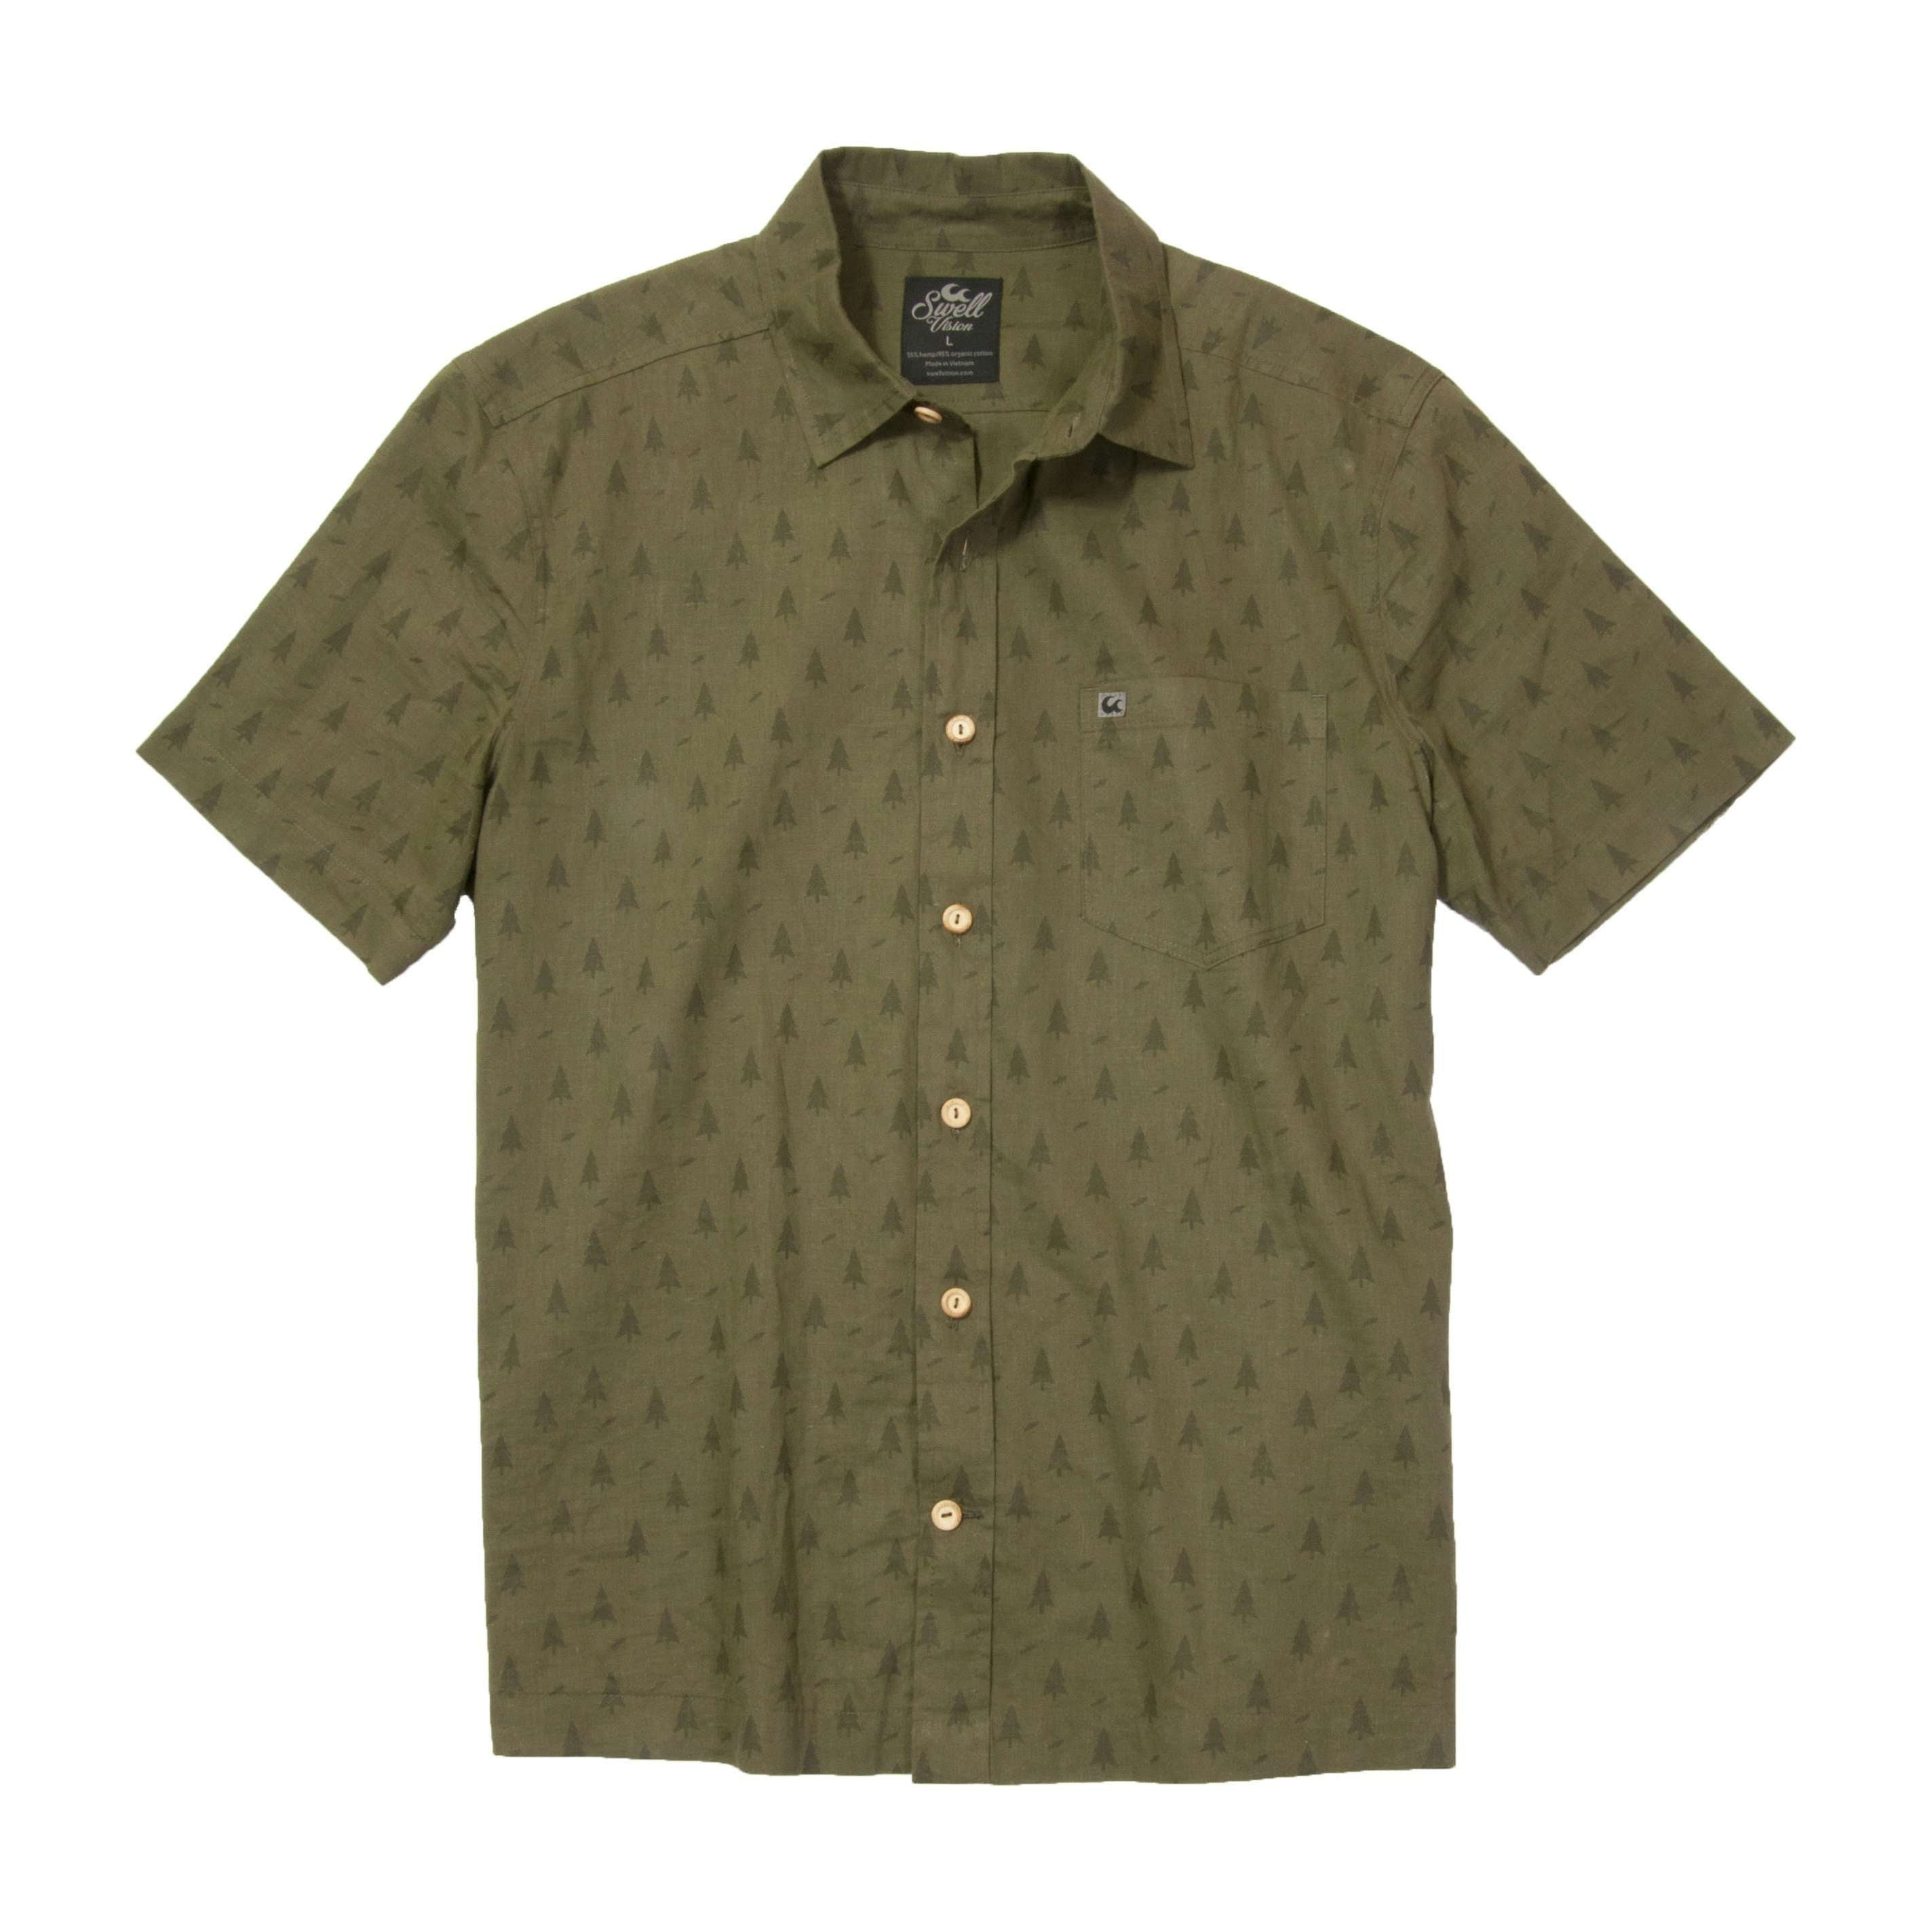 Swell vision sustainable vision bamboo fiber t shirt for Bamboo button down shirts